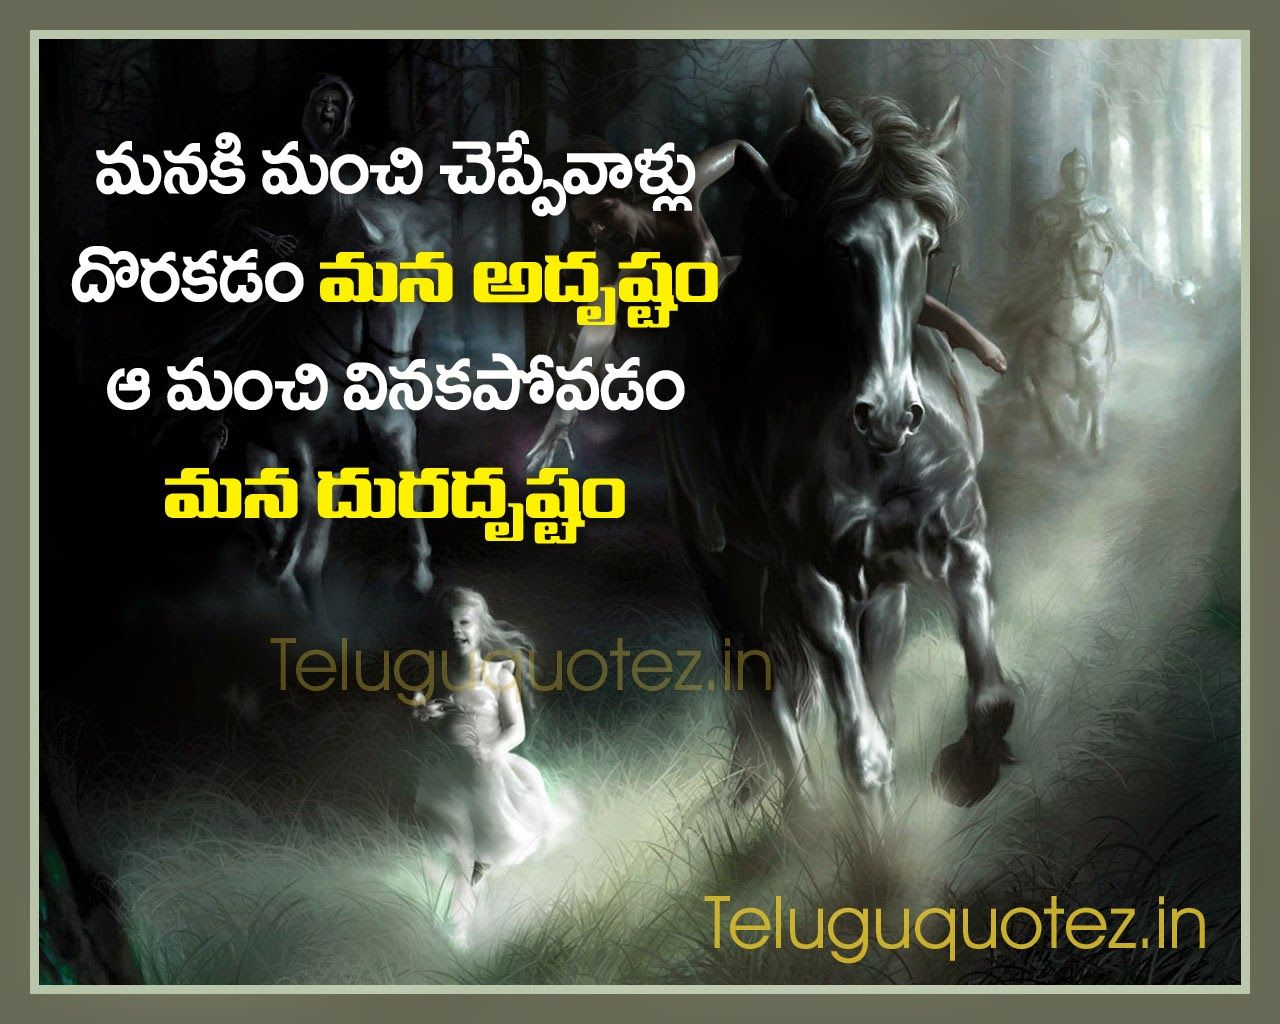 Teluguquotezin Life Quotes And Sayings In Telugu Language Telugu